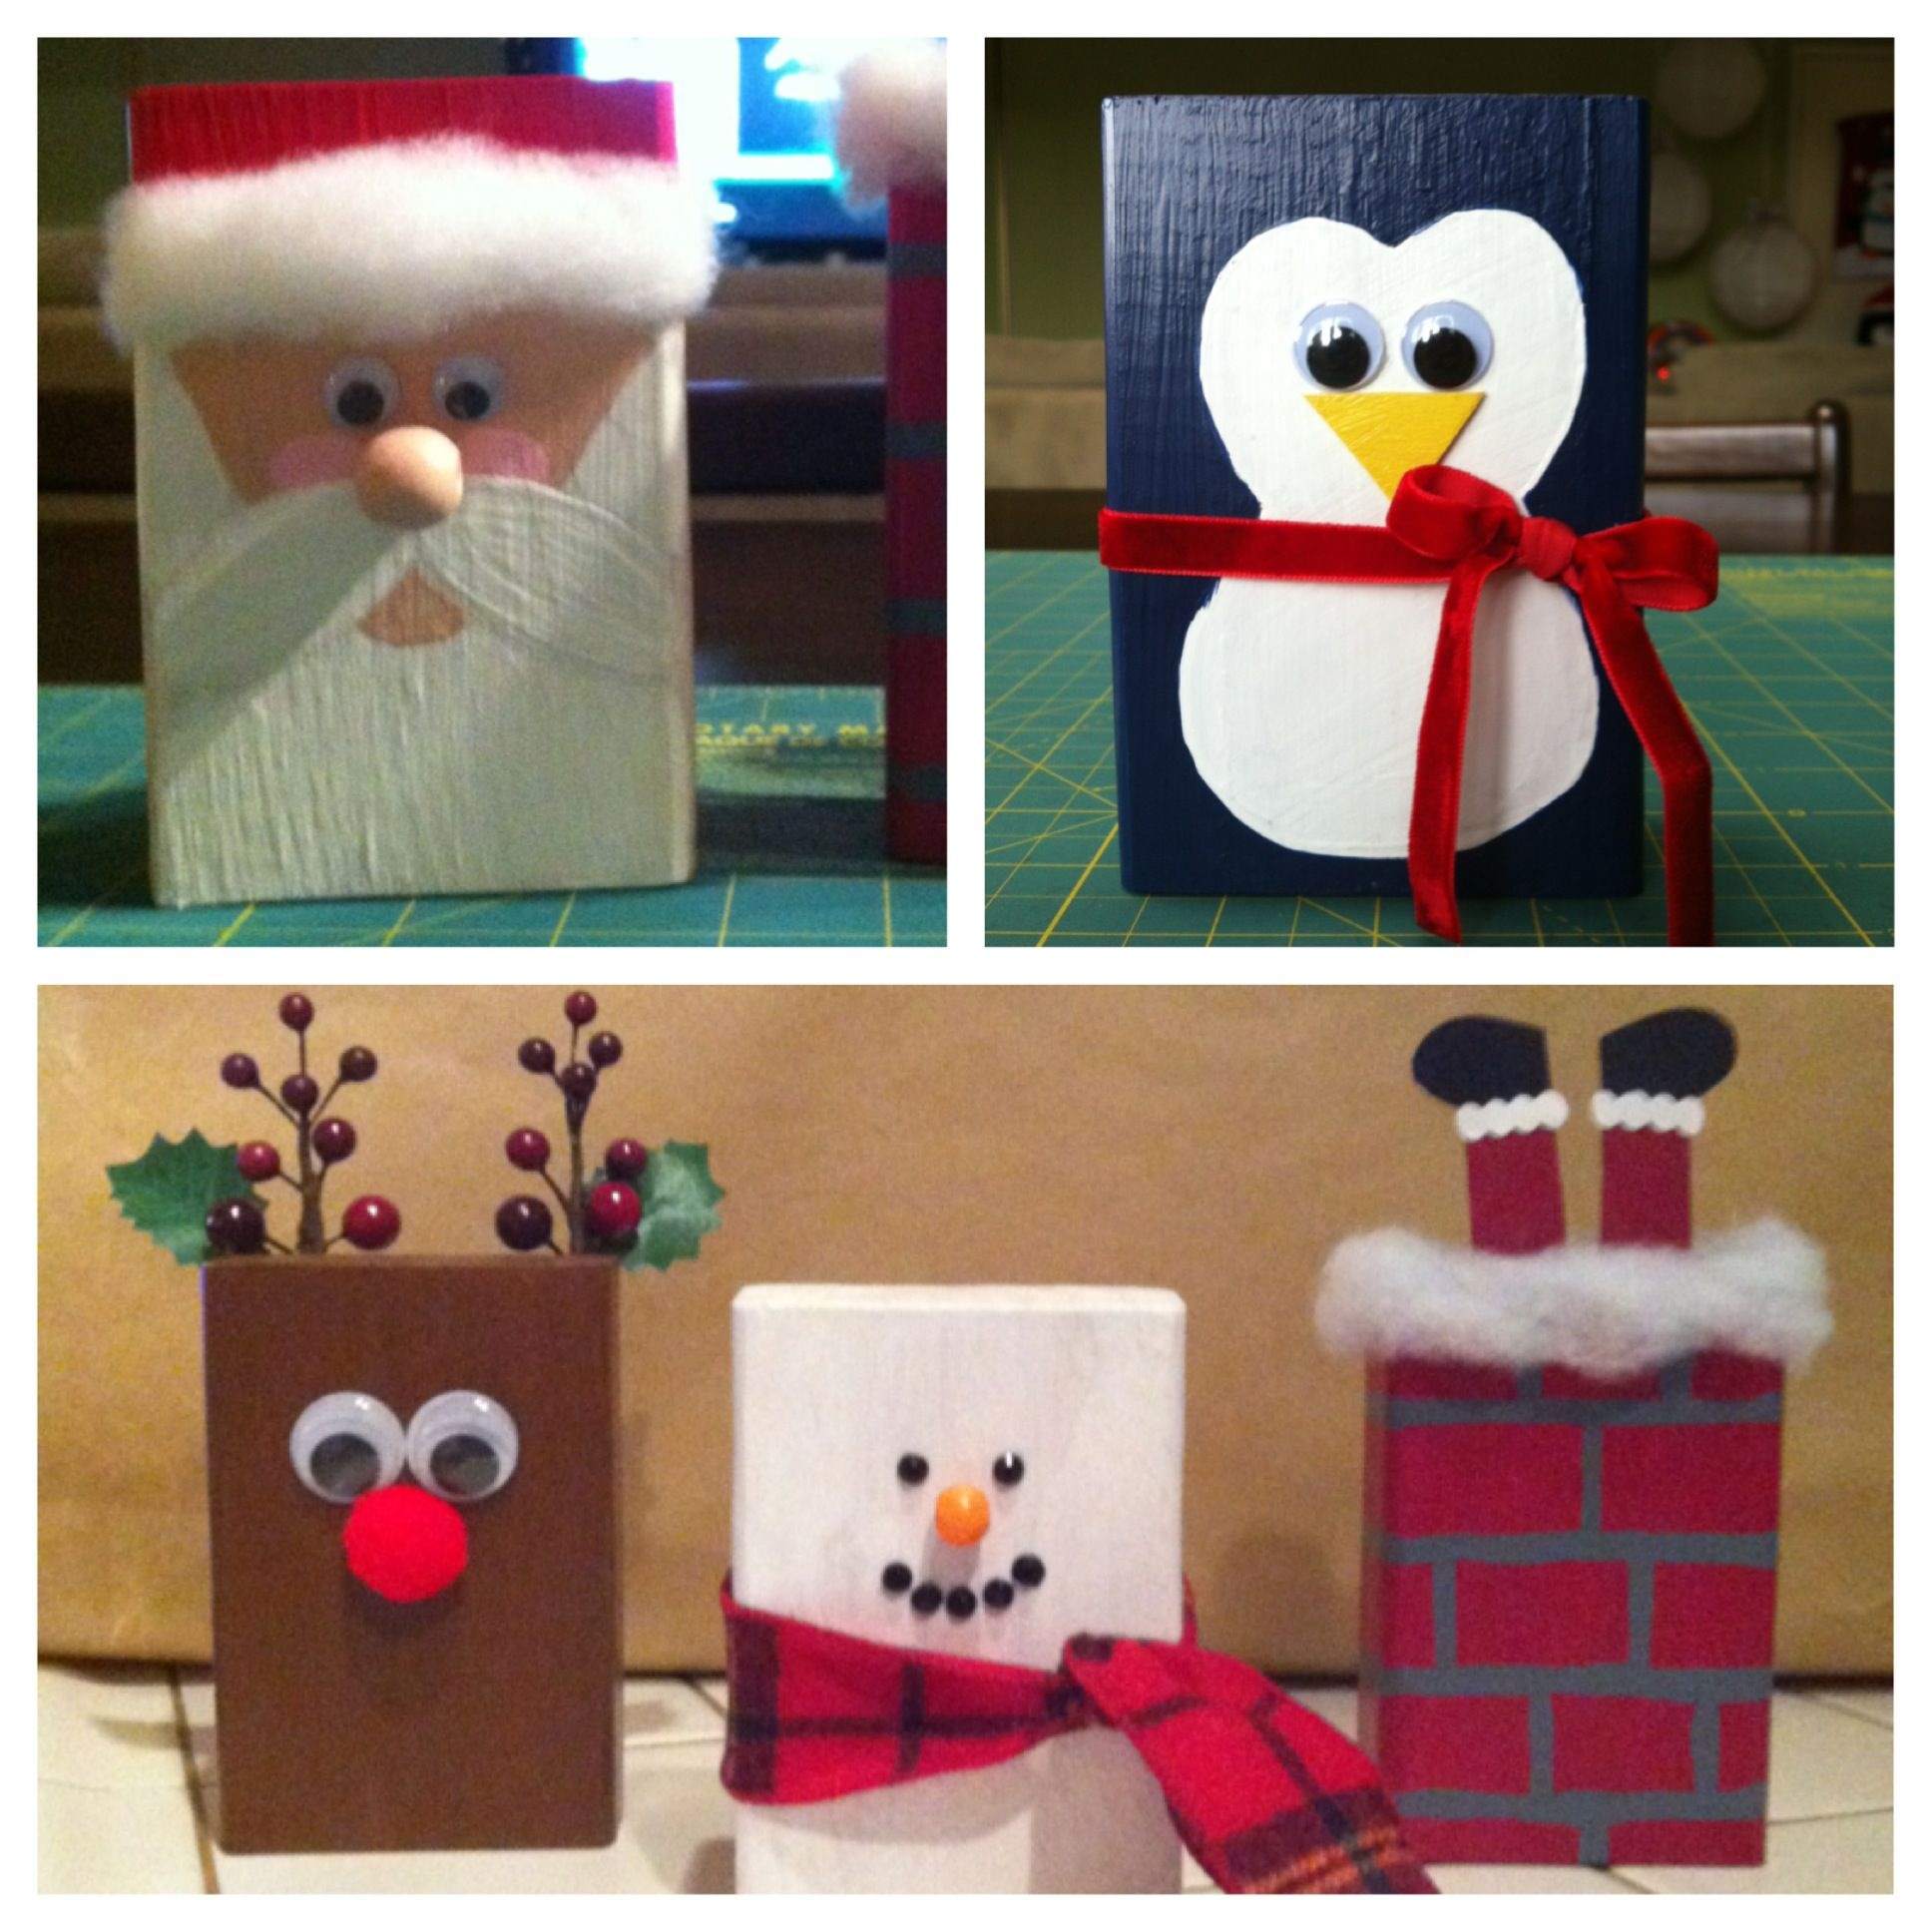 2x4 crafts on pinterest 2x4 crafts wood blocks and for Make wooden craft ideas